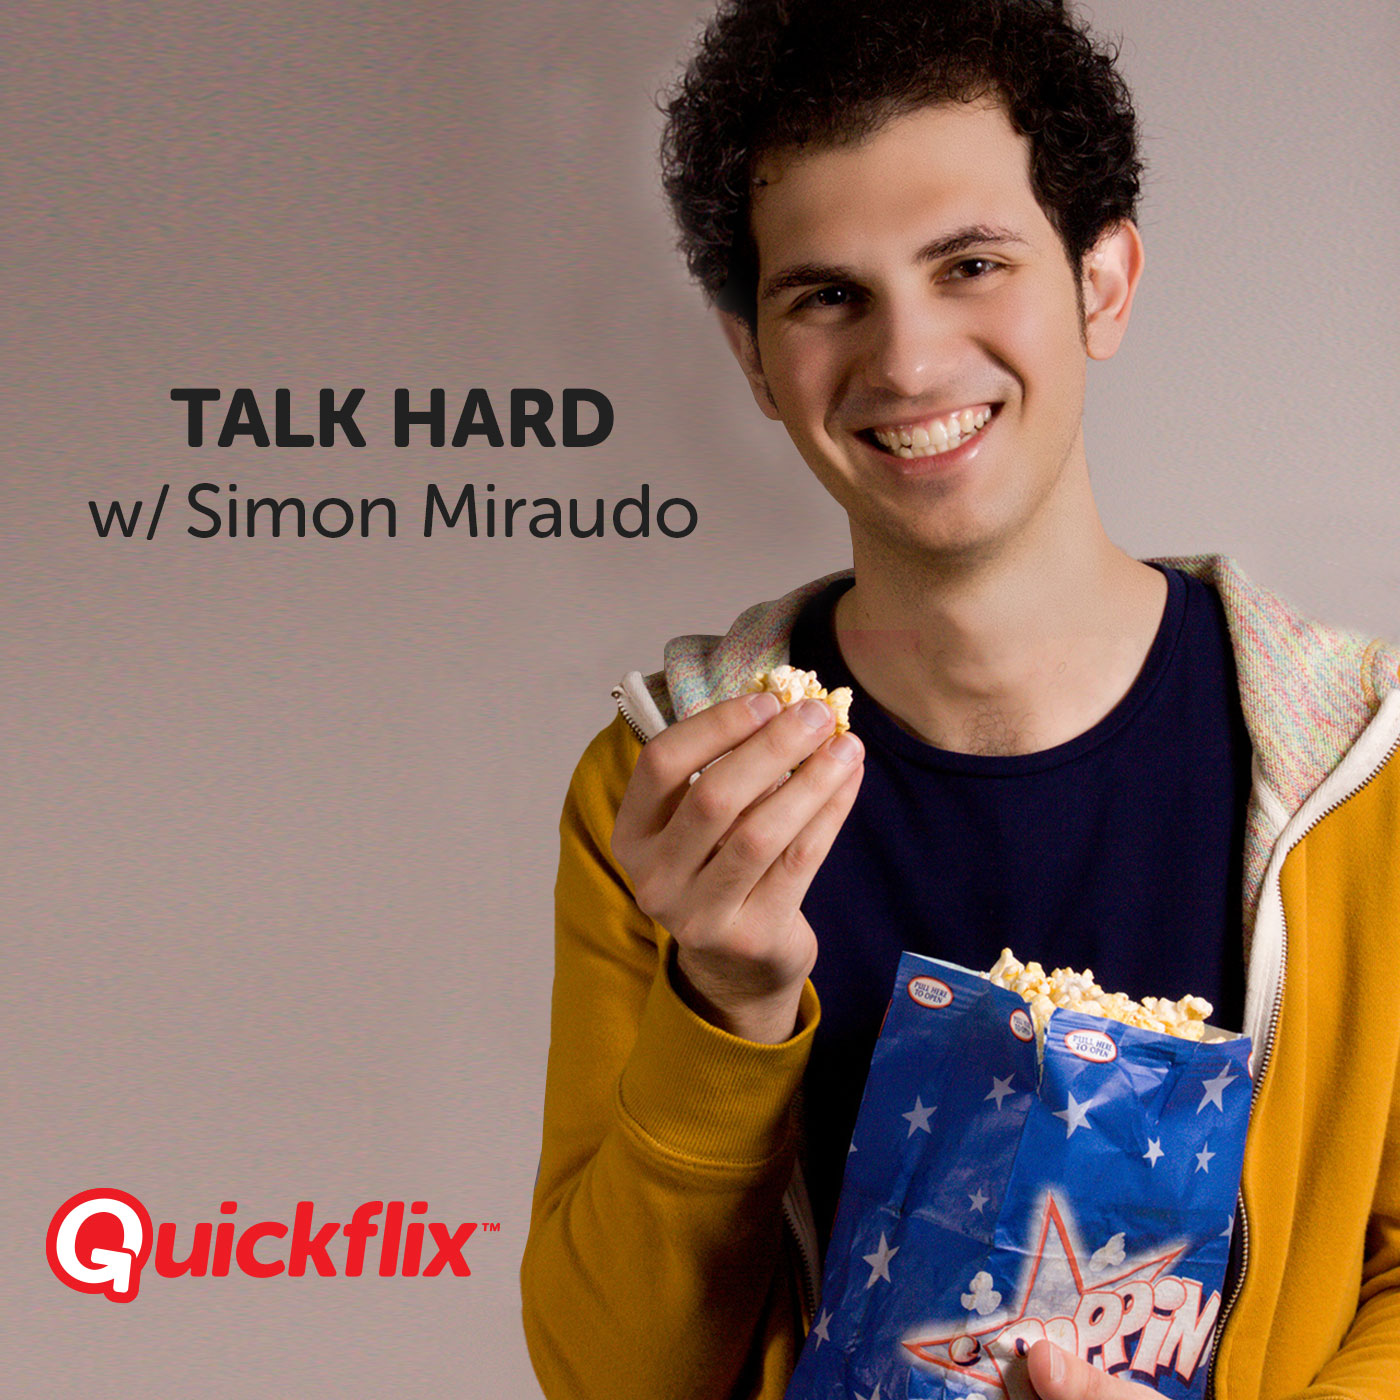 Talk Hard – Quickflix – News & Reviews